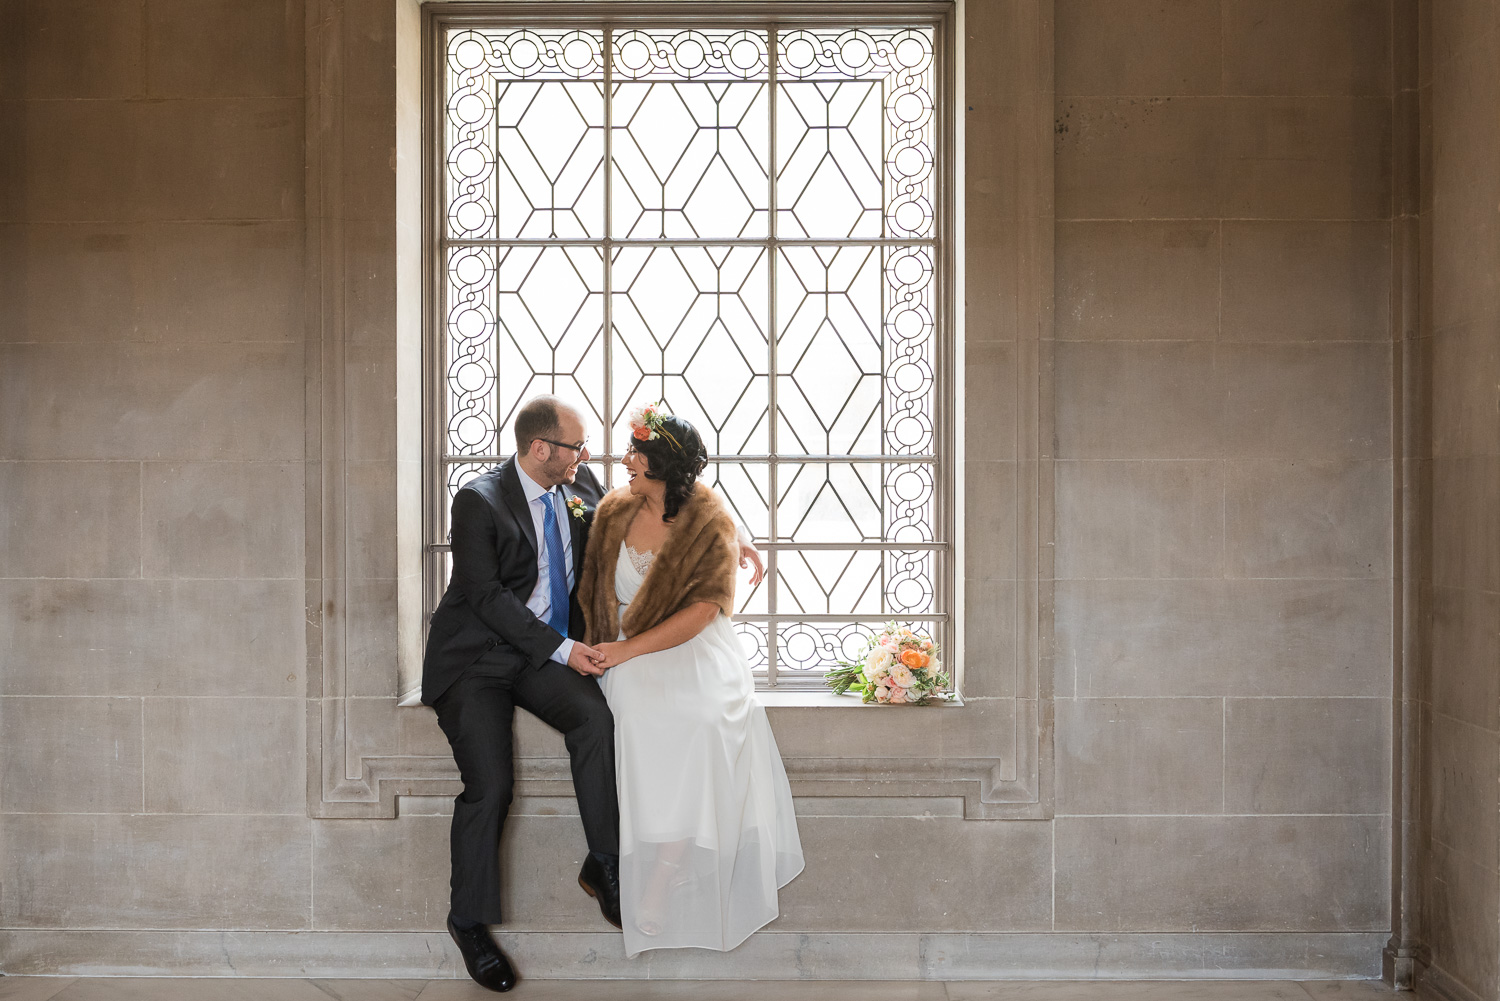 Bride and groom in windowsill at city hall